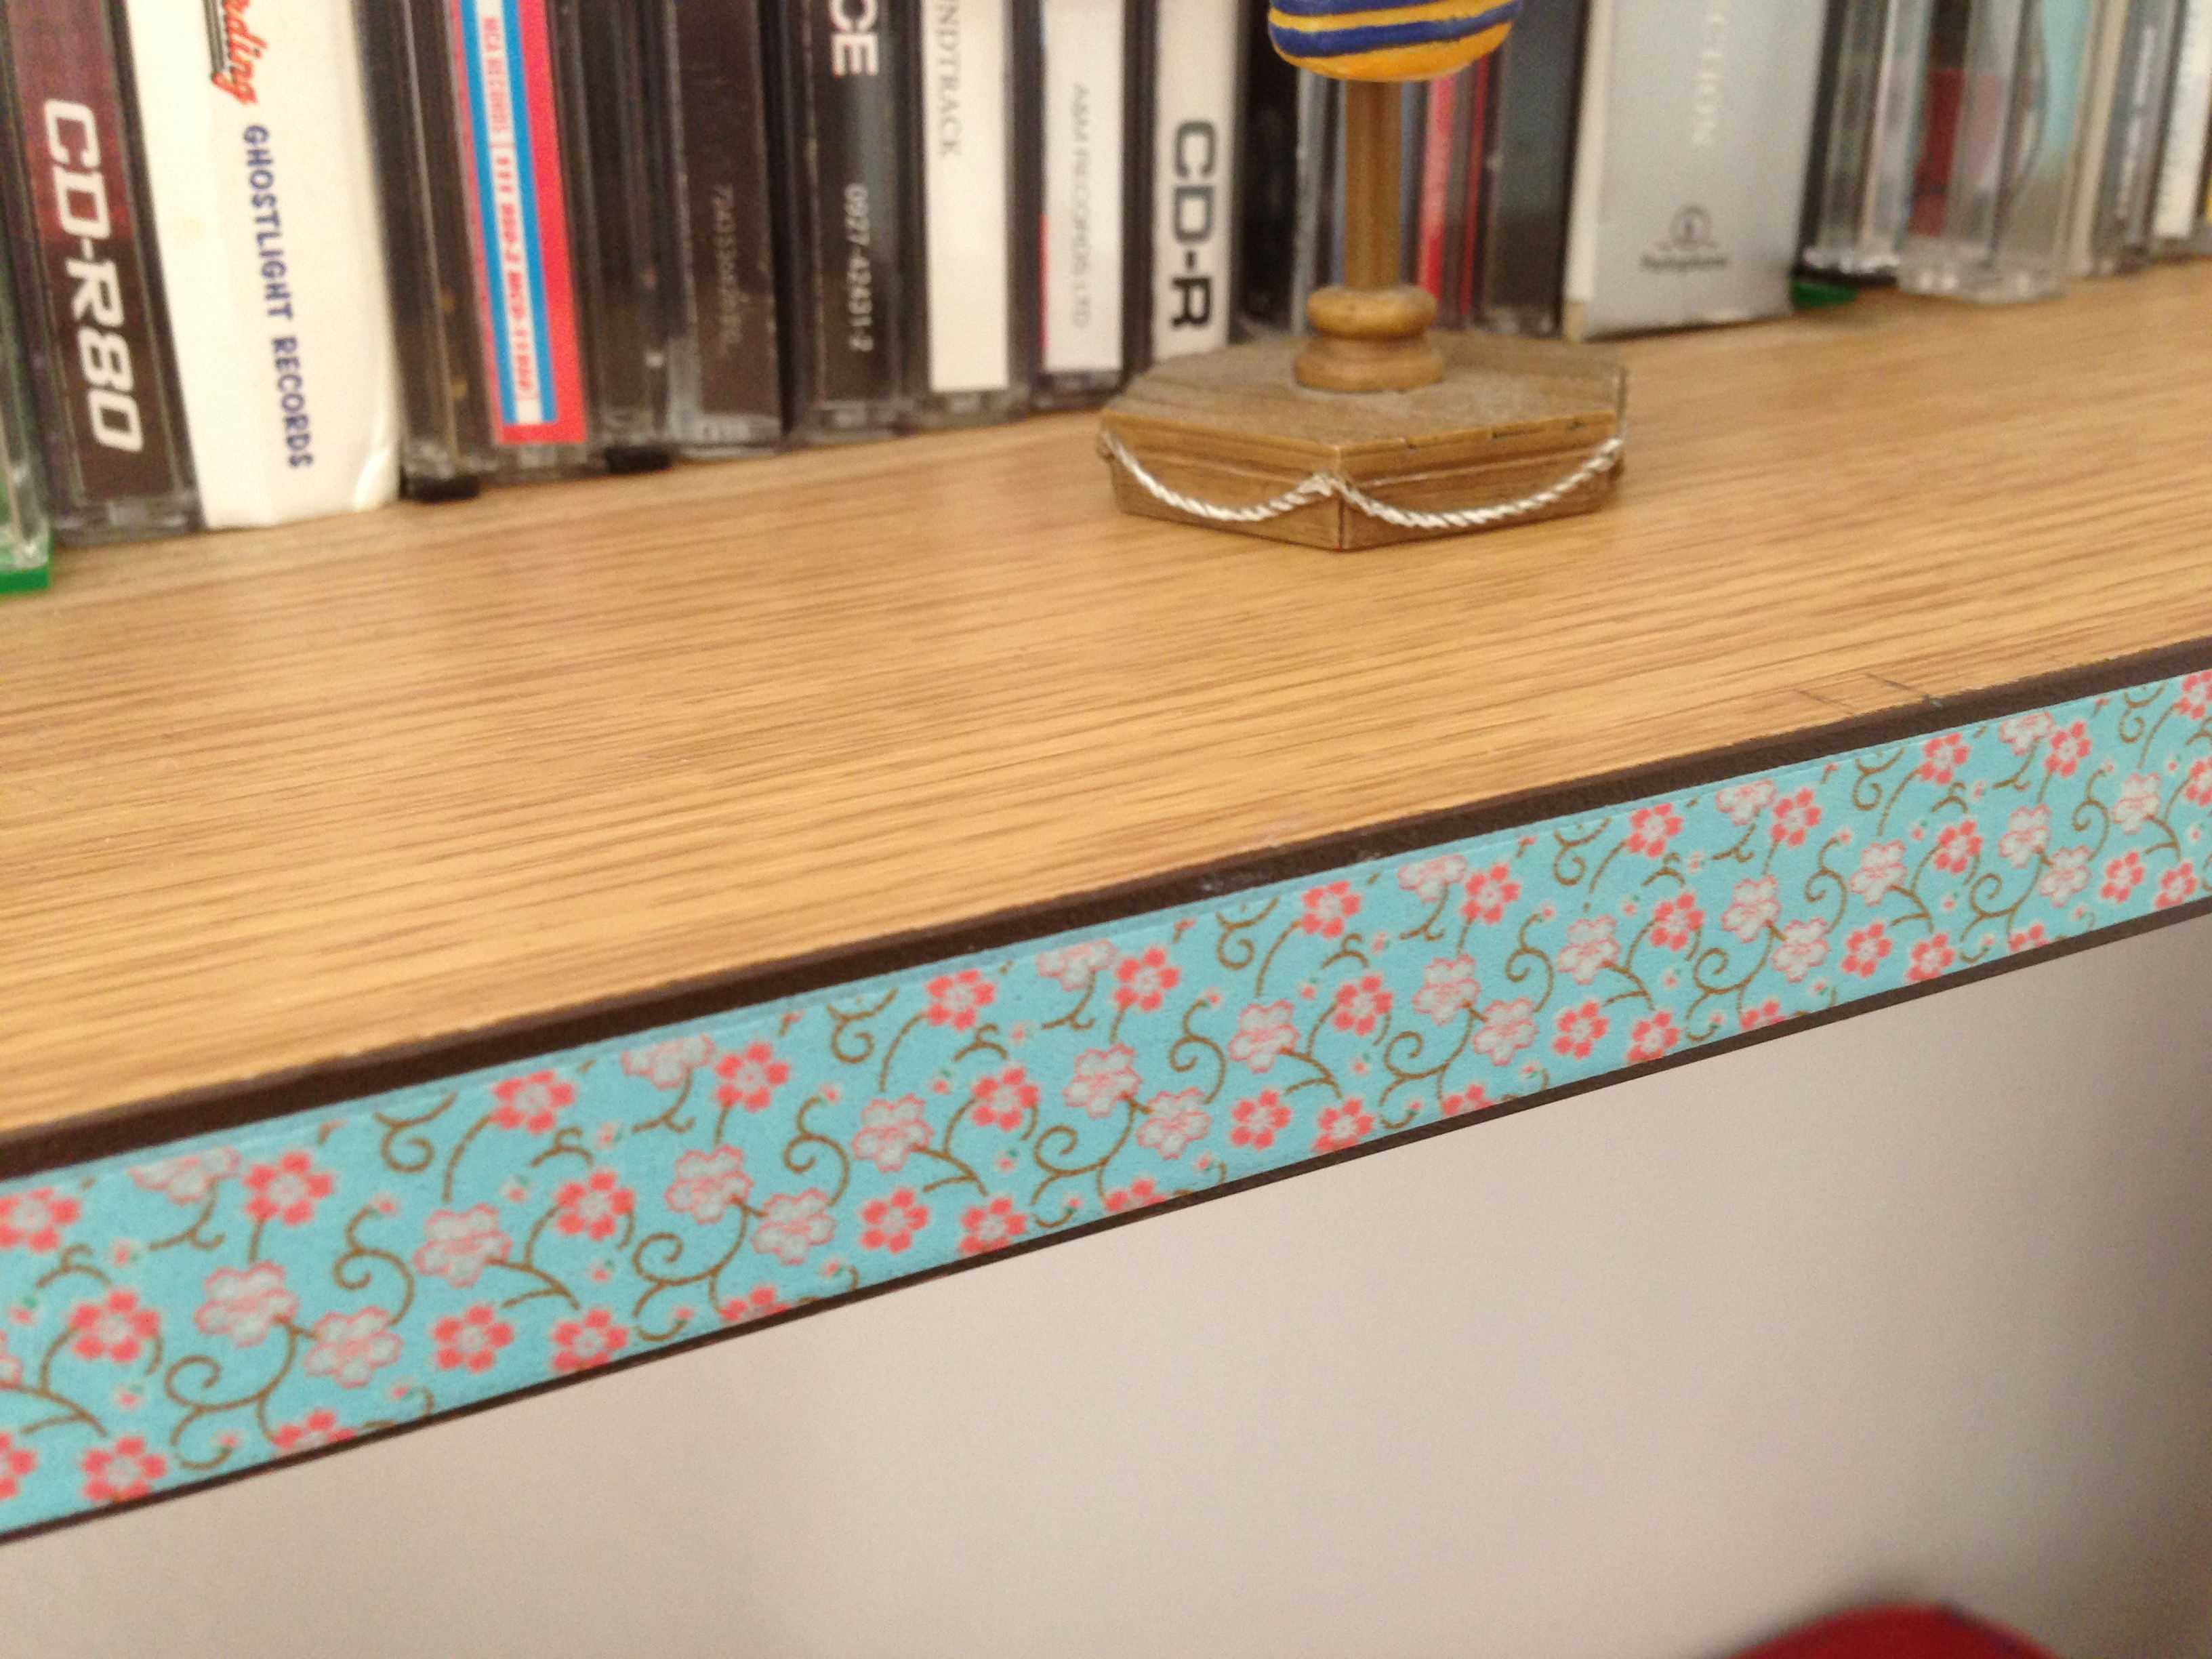 Washi tape upcycling inspiration english rose from for Washi tape project ideas